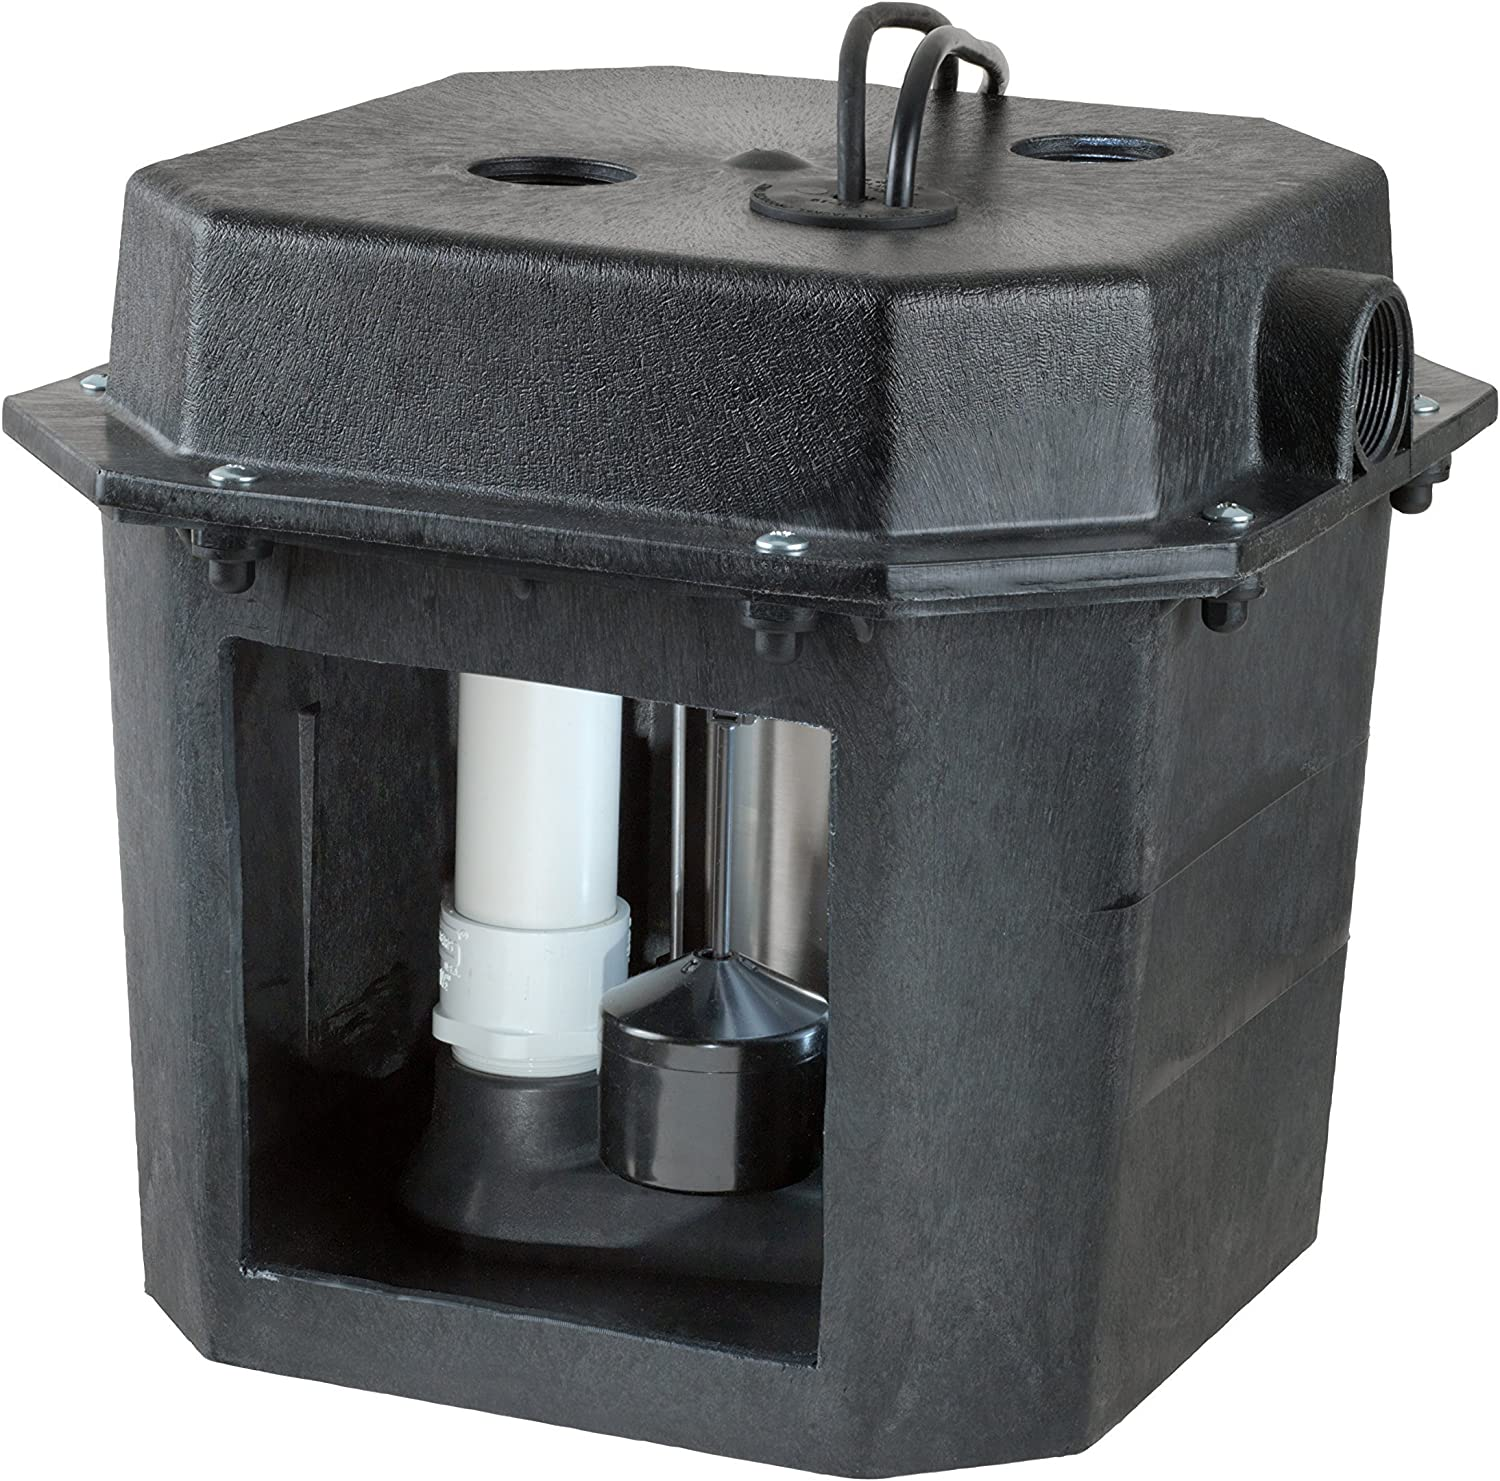 Blue Angel Pumps SSF33SDP 1/3 Hp Drain/Sump/Laundry Pump Preassembled Packaged System